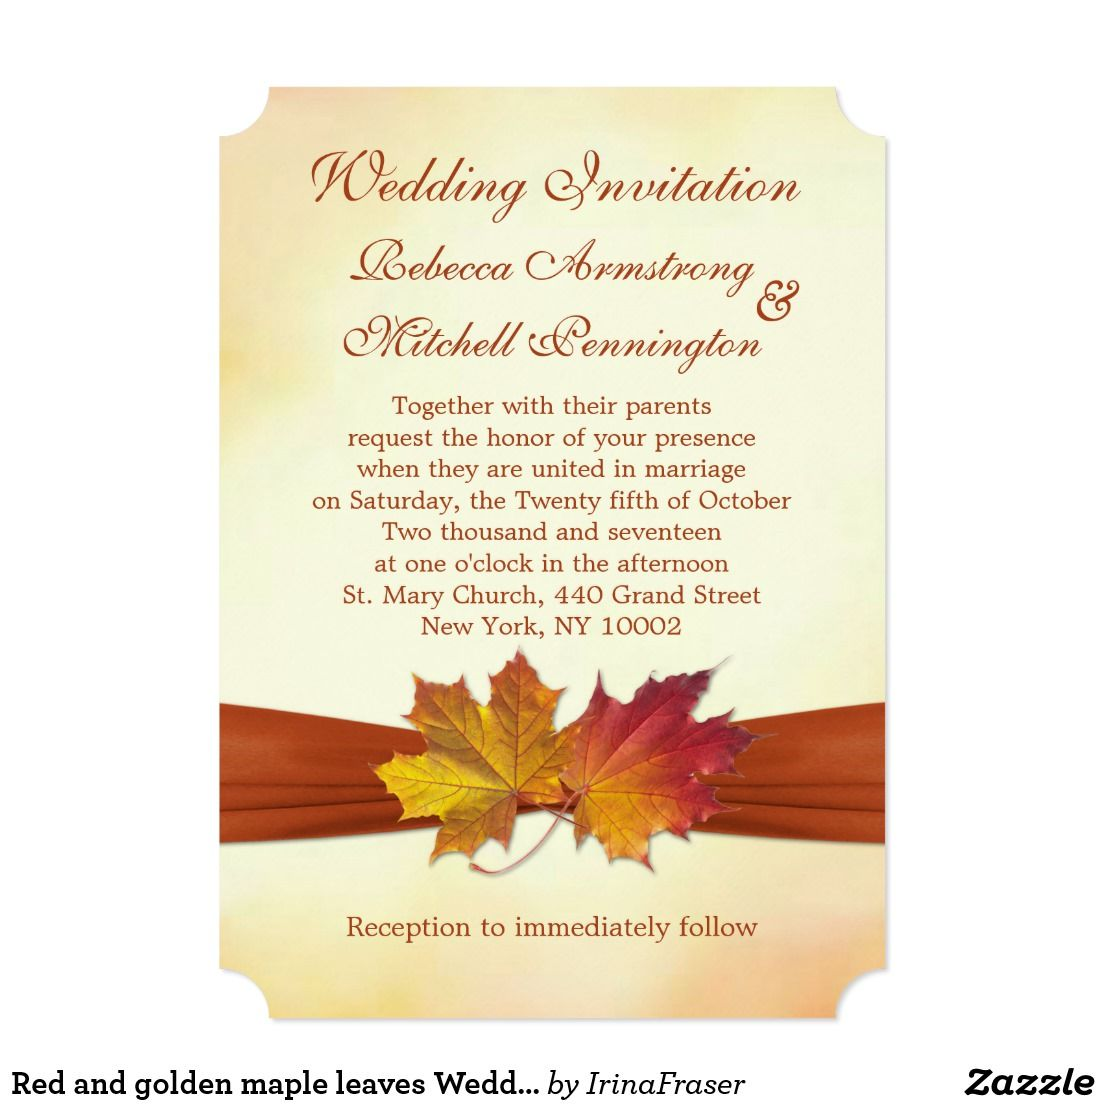 Red and golden maple leaves Wedding Invitation Red and golden ...